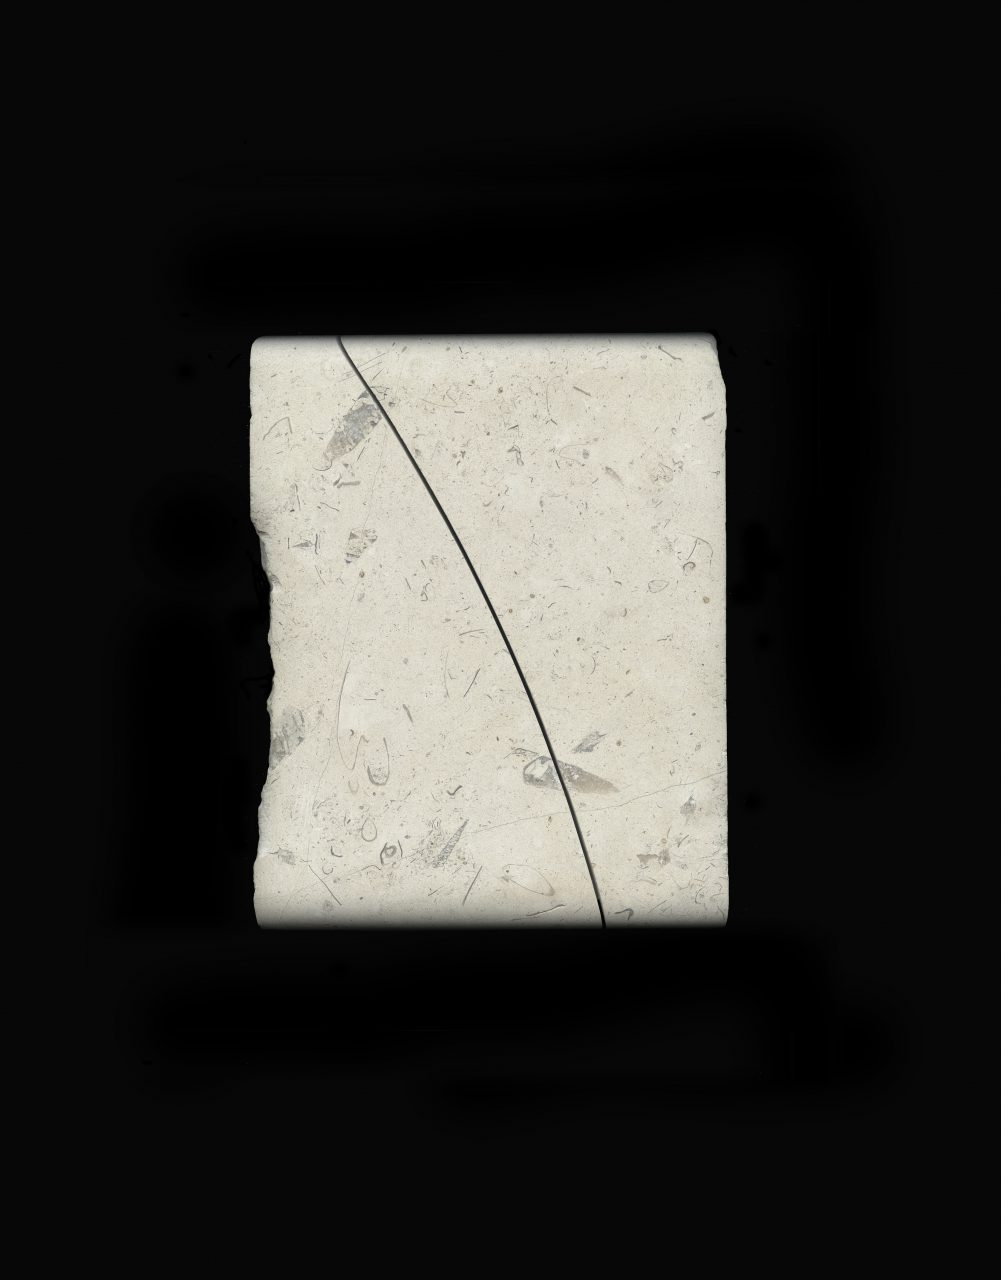 UNTROUBLED LINE – small (after Iris Murdoch) 2019 Lincolnshire limestone – silverbed 18.5 x 14.6. x 2.5 cm